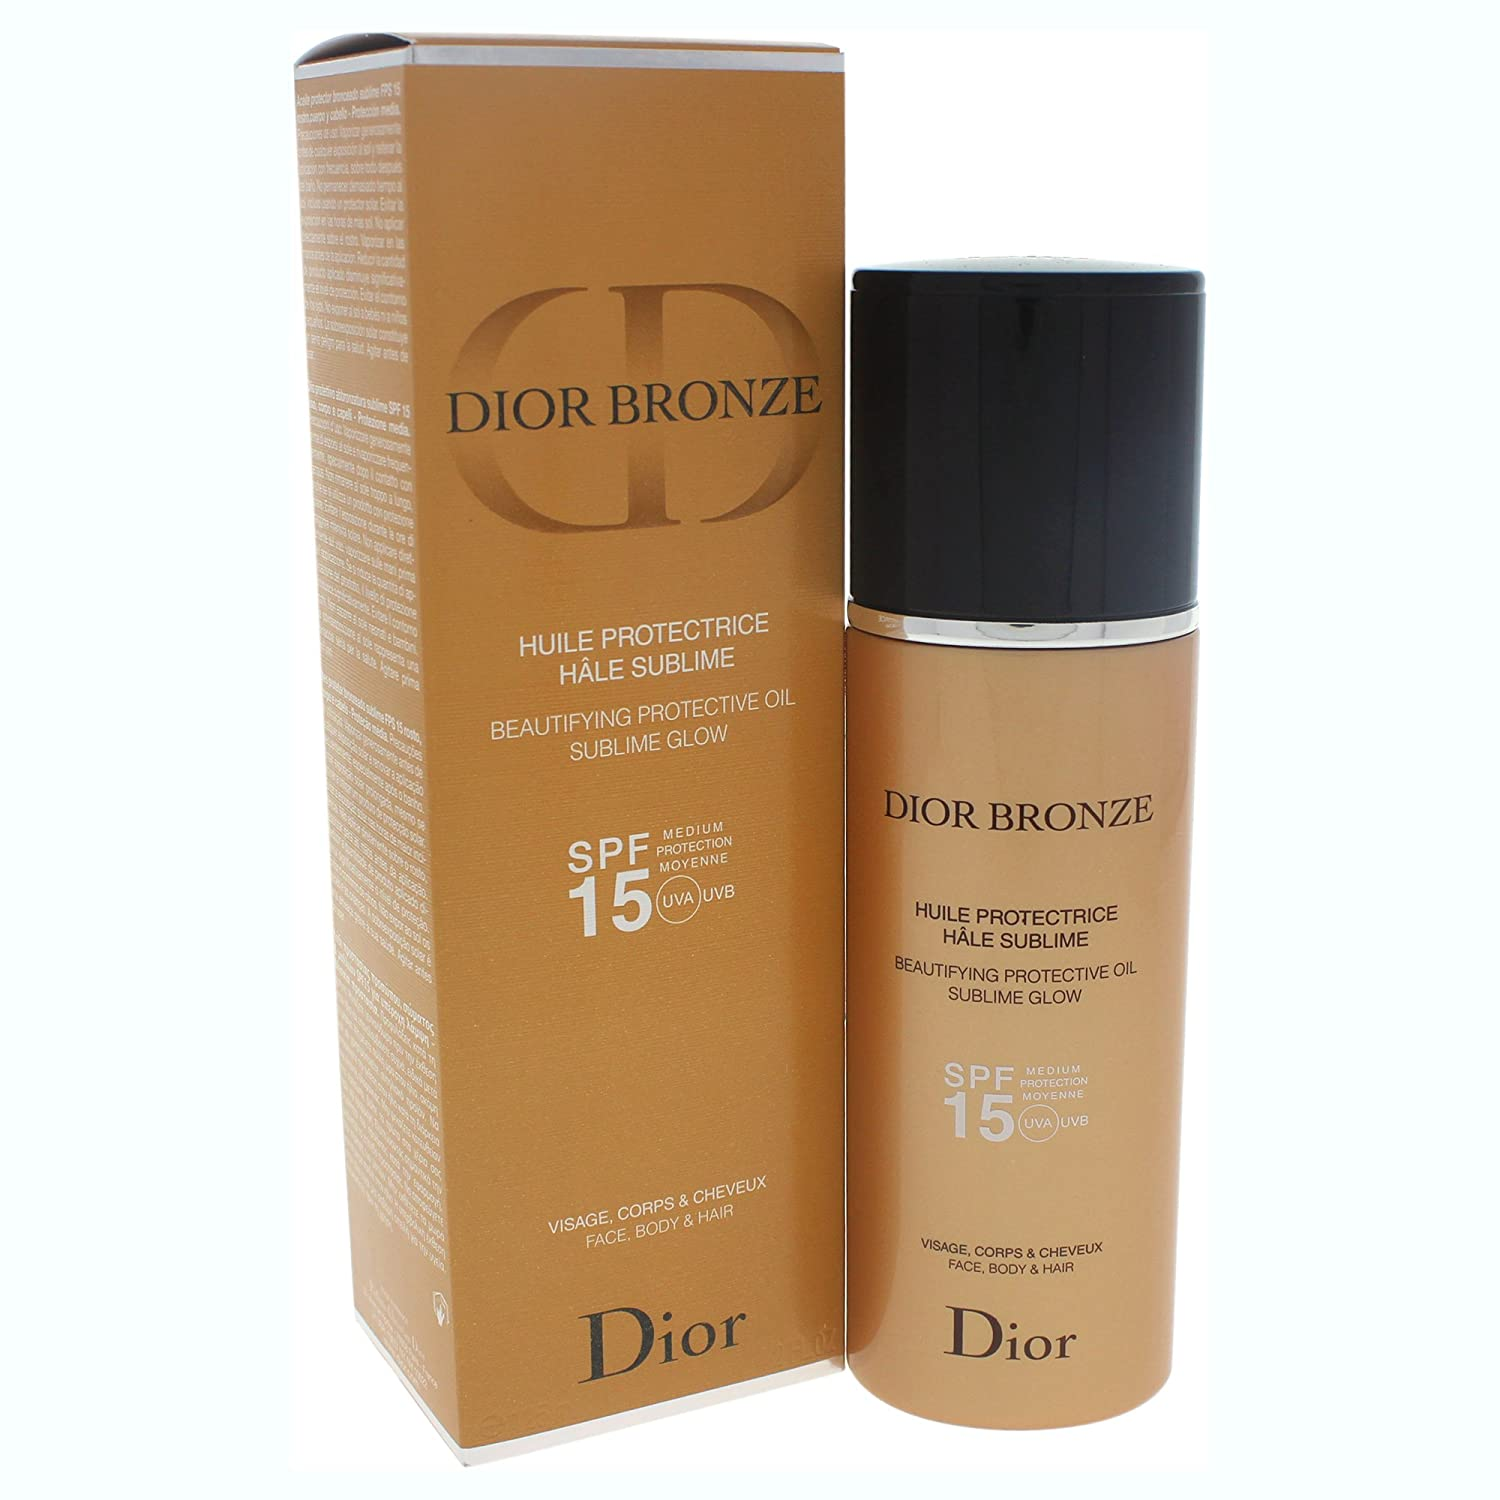 63ff7cab0 Amazon.com : Christian Dior Beautifying Dior Bronze Protective Oil Sublime  Glow SPF 15, 4.2 Ounce : Beauty